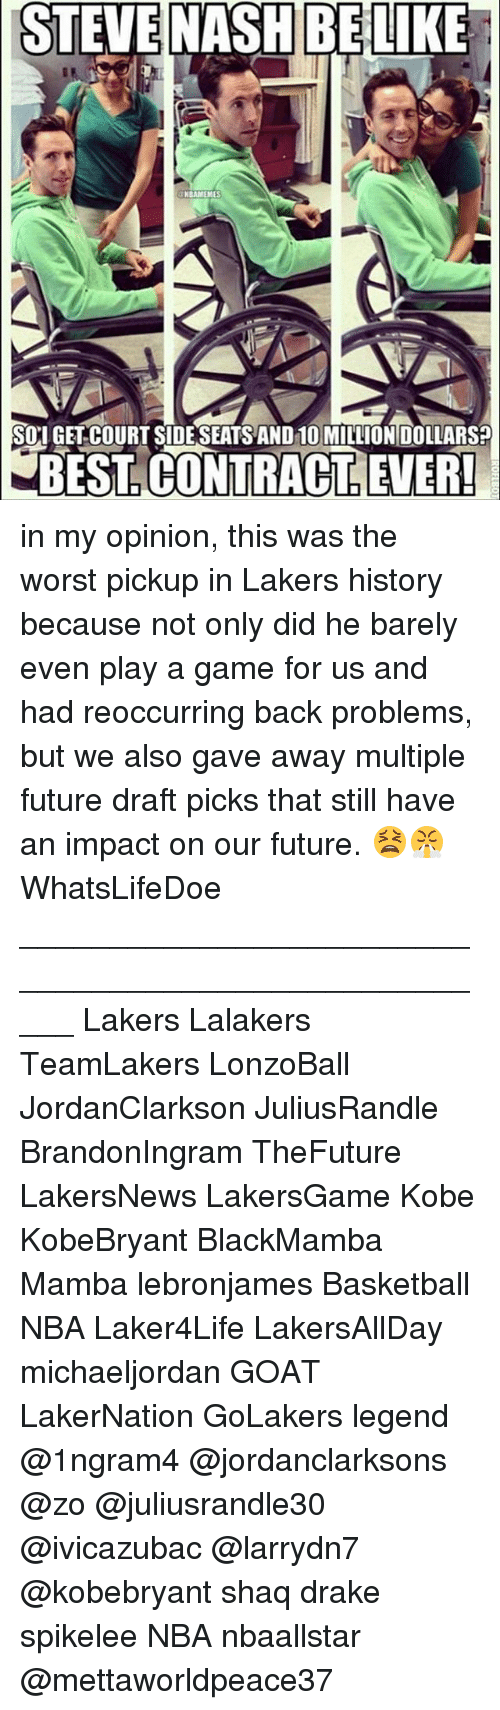 courting: STEVE  NASH BELIKE  NBAMEMES  SOI GET COURT SIDESEATS AND 10 MILLION DOLLARS?  BEST. CONTRACT, LEVER in my opinion, this was the worst pickup in Lakers history because not only did he barely even play a game for us and had reoccurring back problems, but we also gave away multiple future draft picks that still have an impact on our future. 😫😤 WhatsLifeDoe _____________________________________________________ Lakers Lalakers TeamLakers LonzoBall JordanClarkson JuliusRandle BrandonIngram TheFuture LakersNews LakersGame Kobe KobeBryant BlackMamba Mamba lebronjames Basketball NBA Laker4Life LakersAllDay michaeljordan GOAT LakerNation GoLakers legend @1ngram4 @jordanclarksons @zo @juliusrandle30 @ivicazubac @larrydn7 @kobebryant shaq drake spikelee NBA nbaallstar @mettaworldpeace37